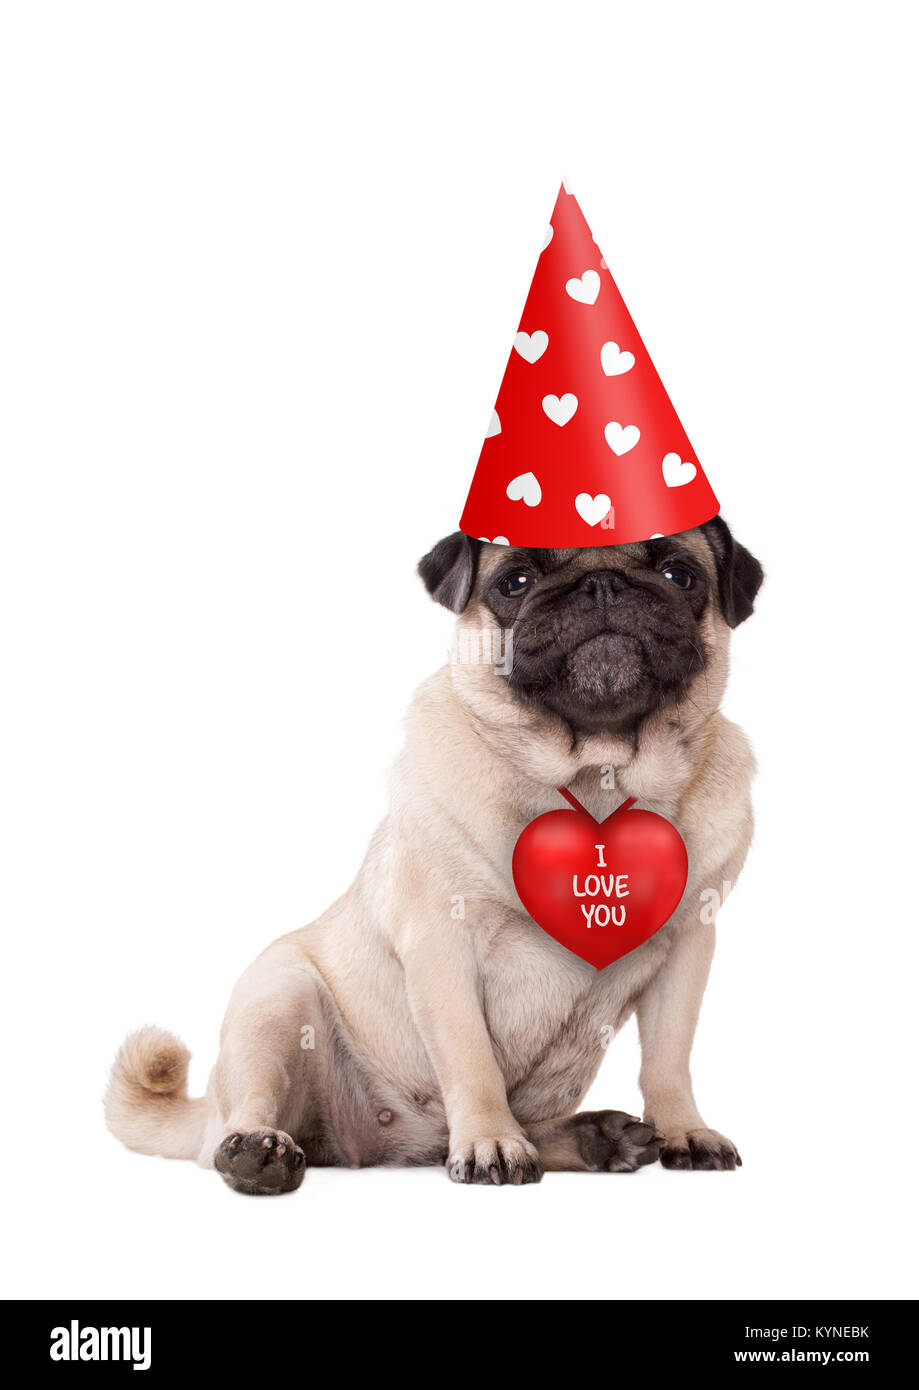 lovely cute Valentine's day puppy pug dog sitting down with red I love you heart and party hat with hearts, - Stock Image